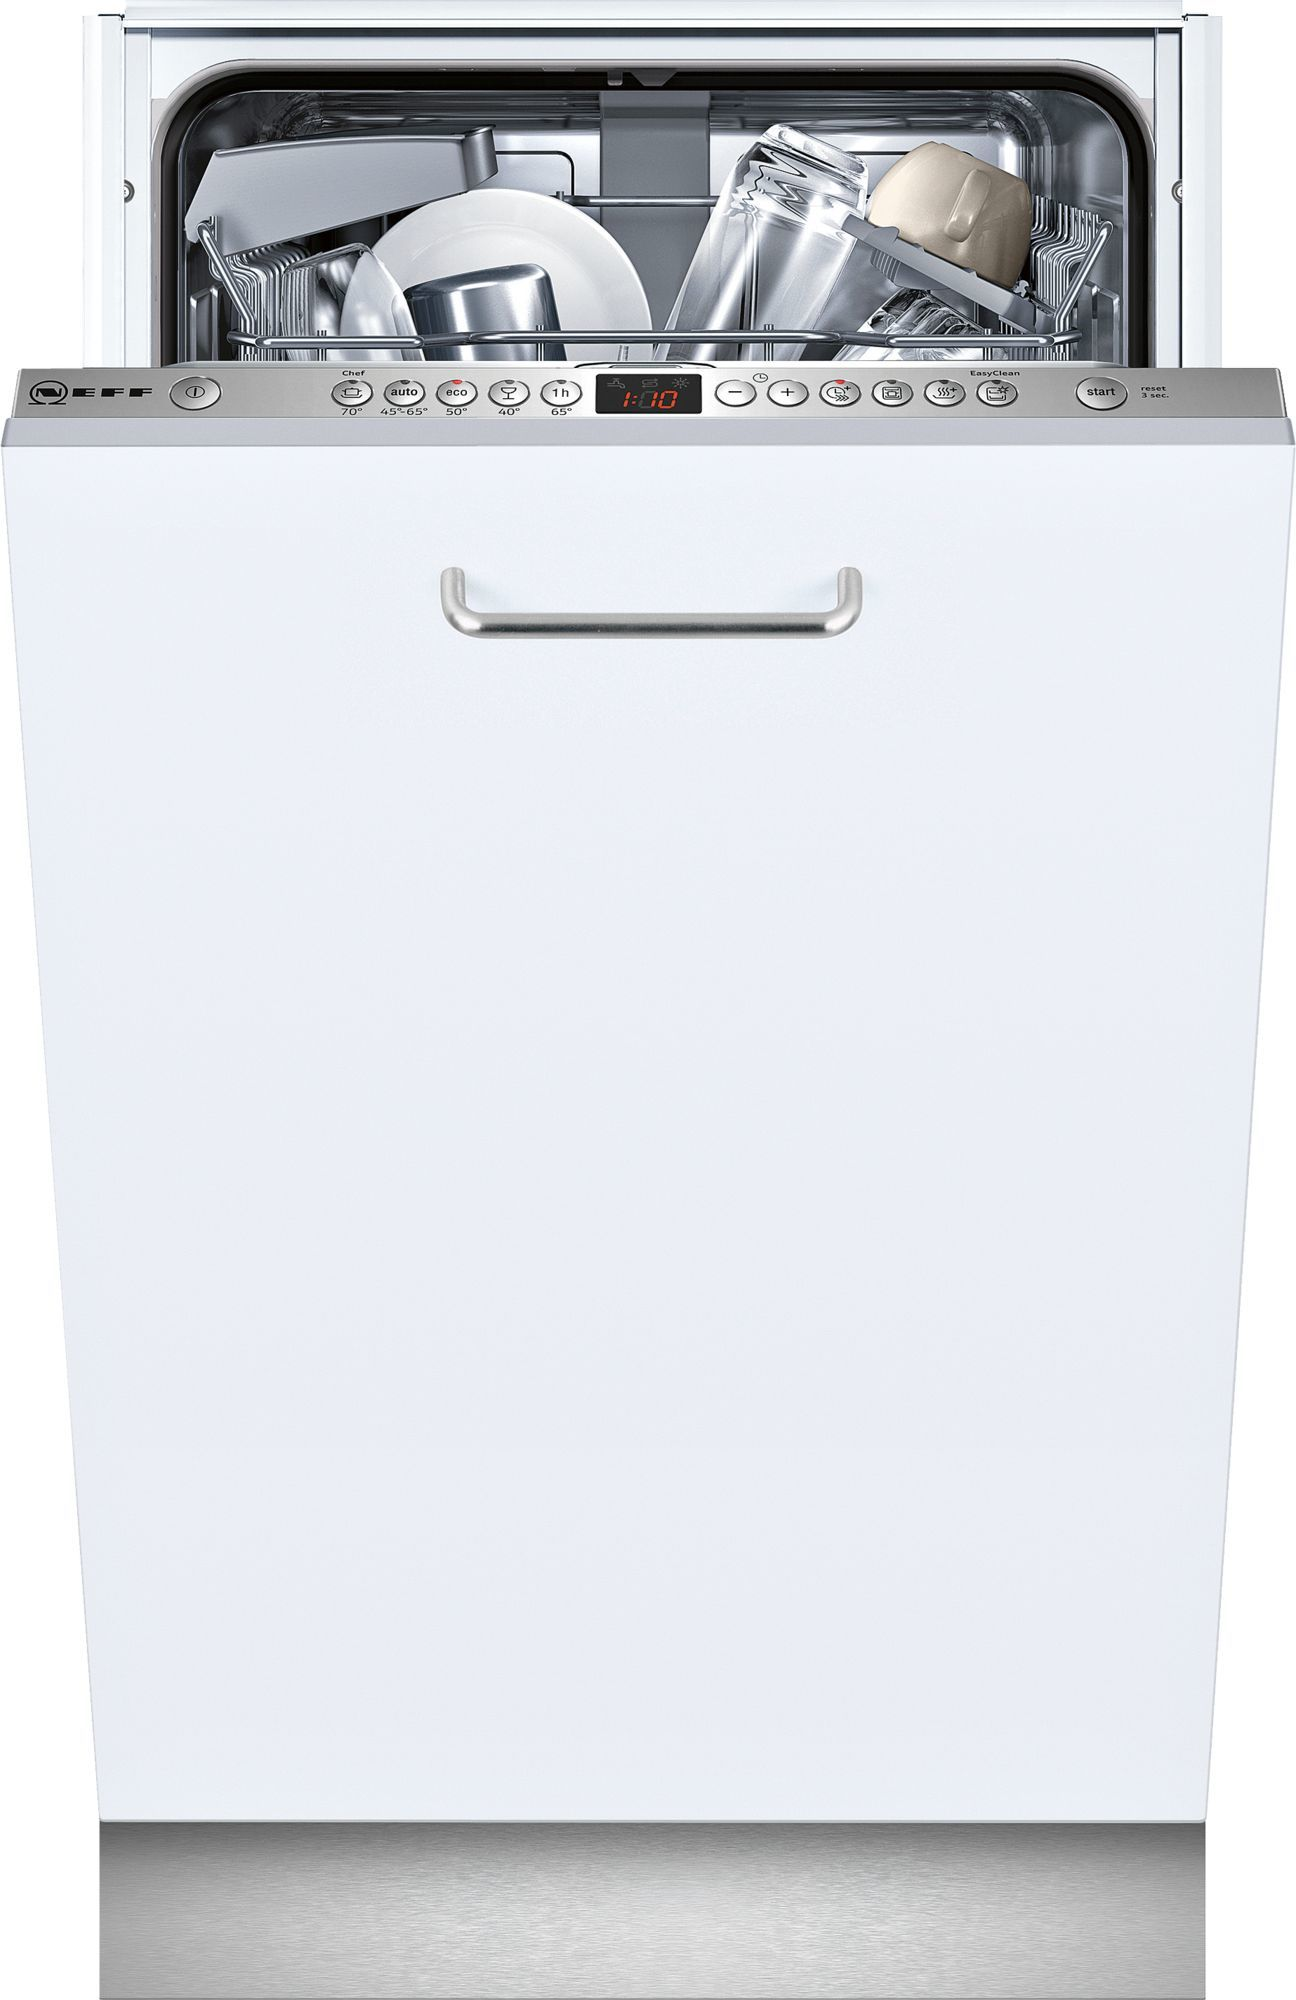 Photos 1: Neff Dishwasher cm. 45 - 9 covered total disappearance S583C50X2E